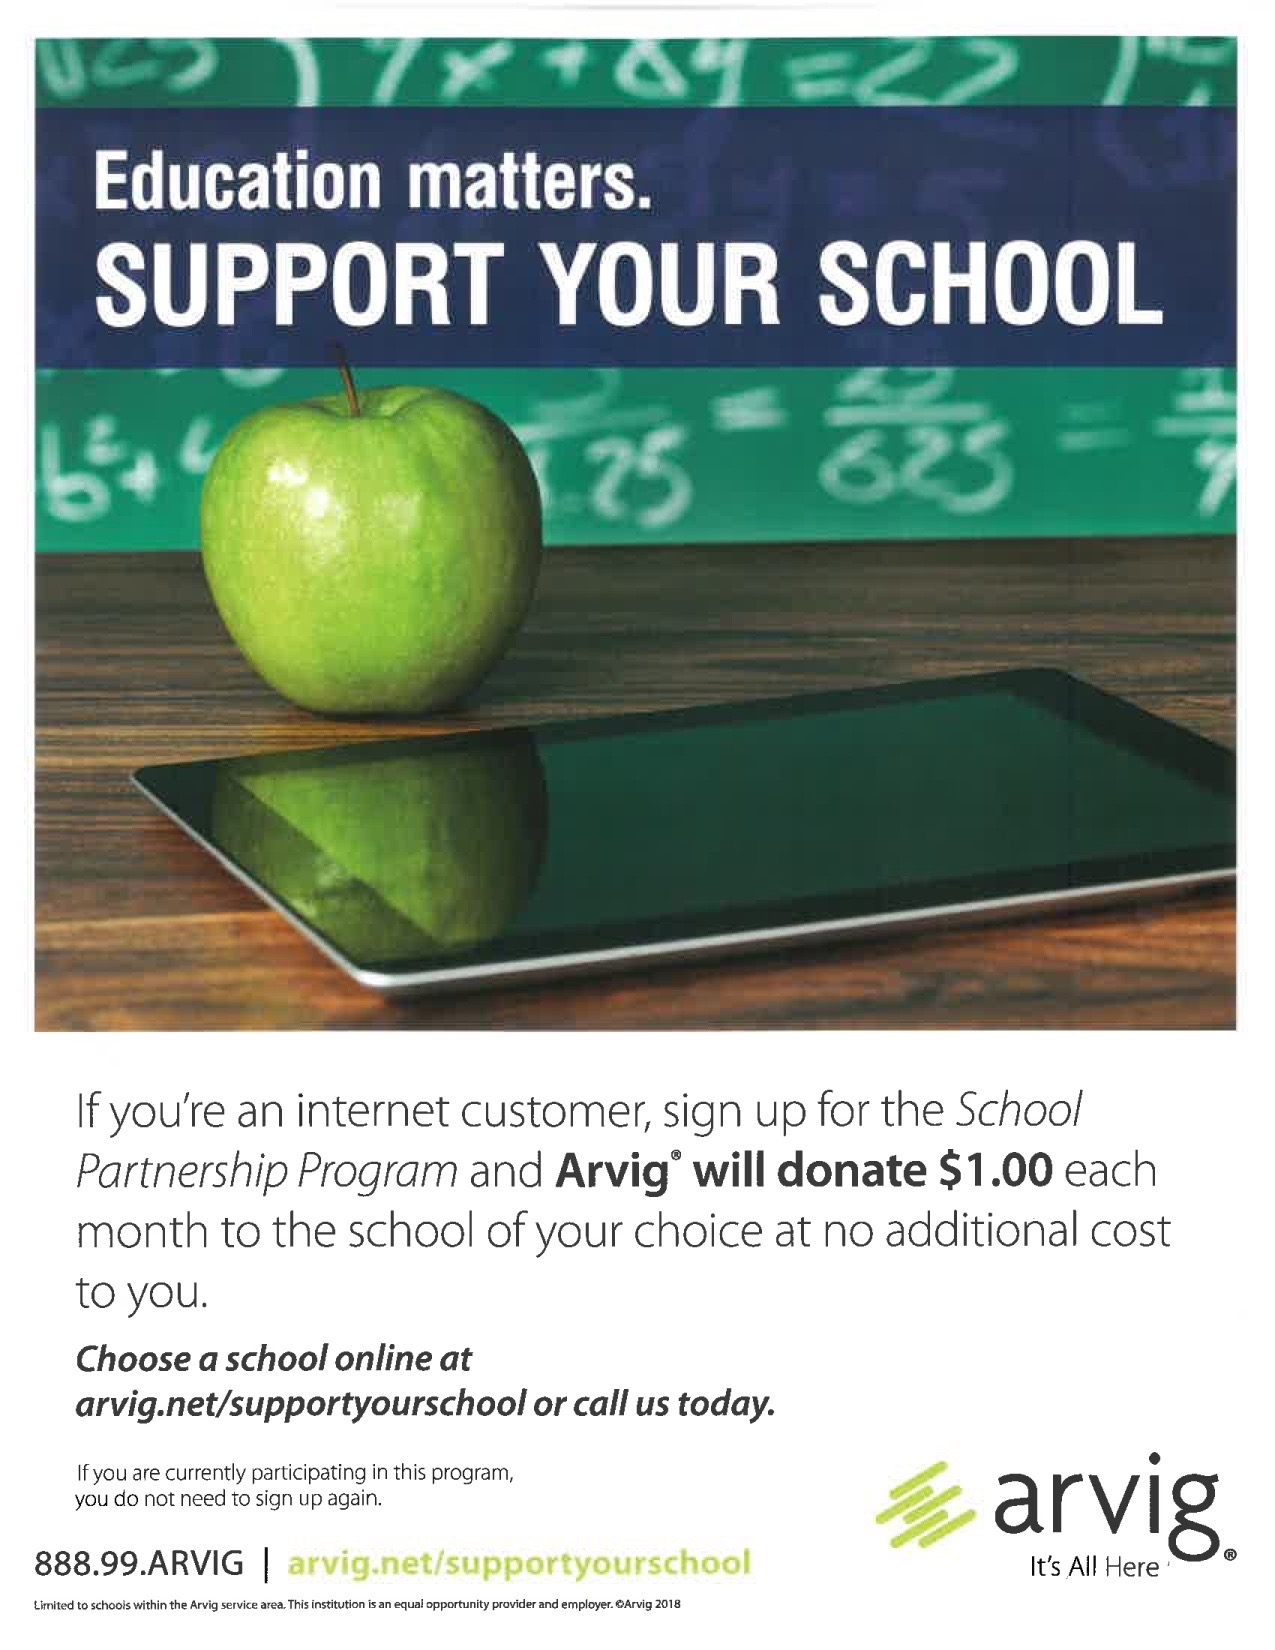 Arvig School Partnership Program